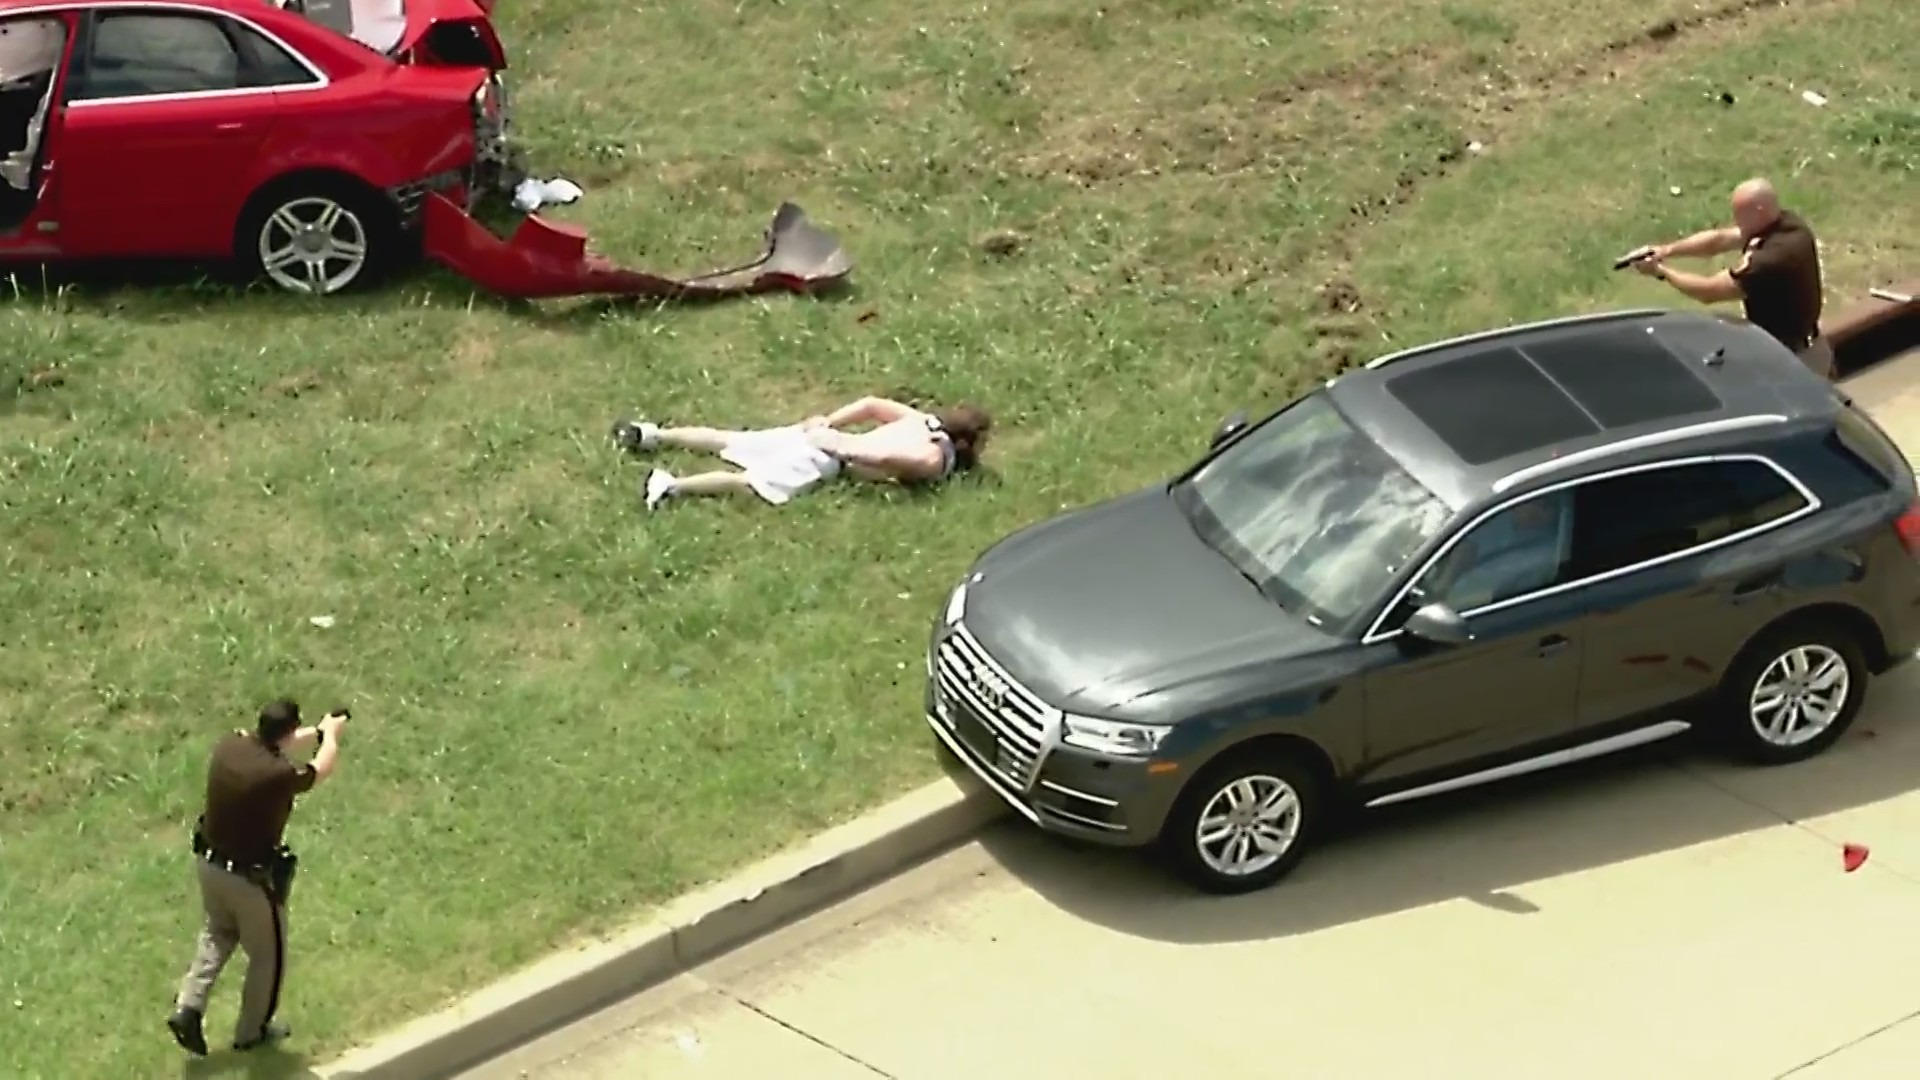 image of suspect on the ground after high speed chase